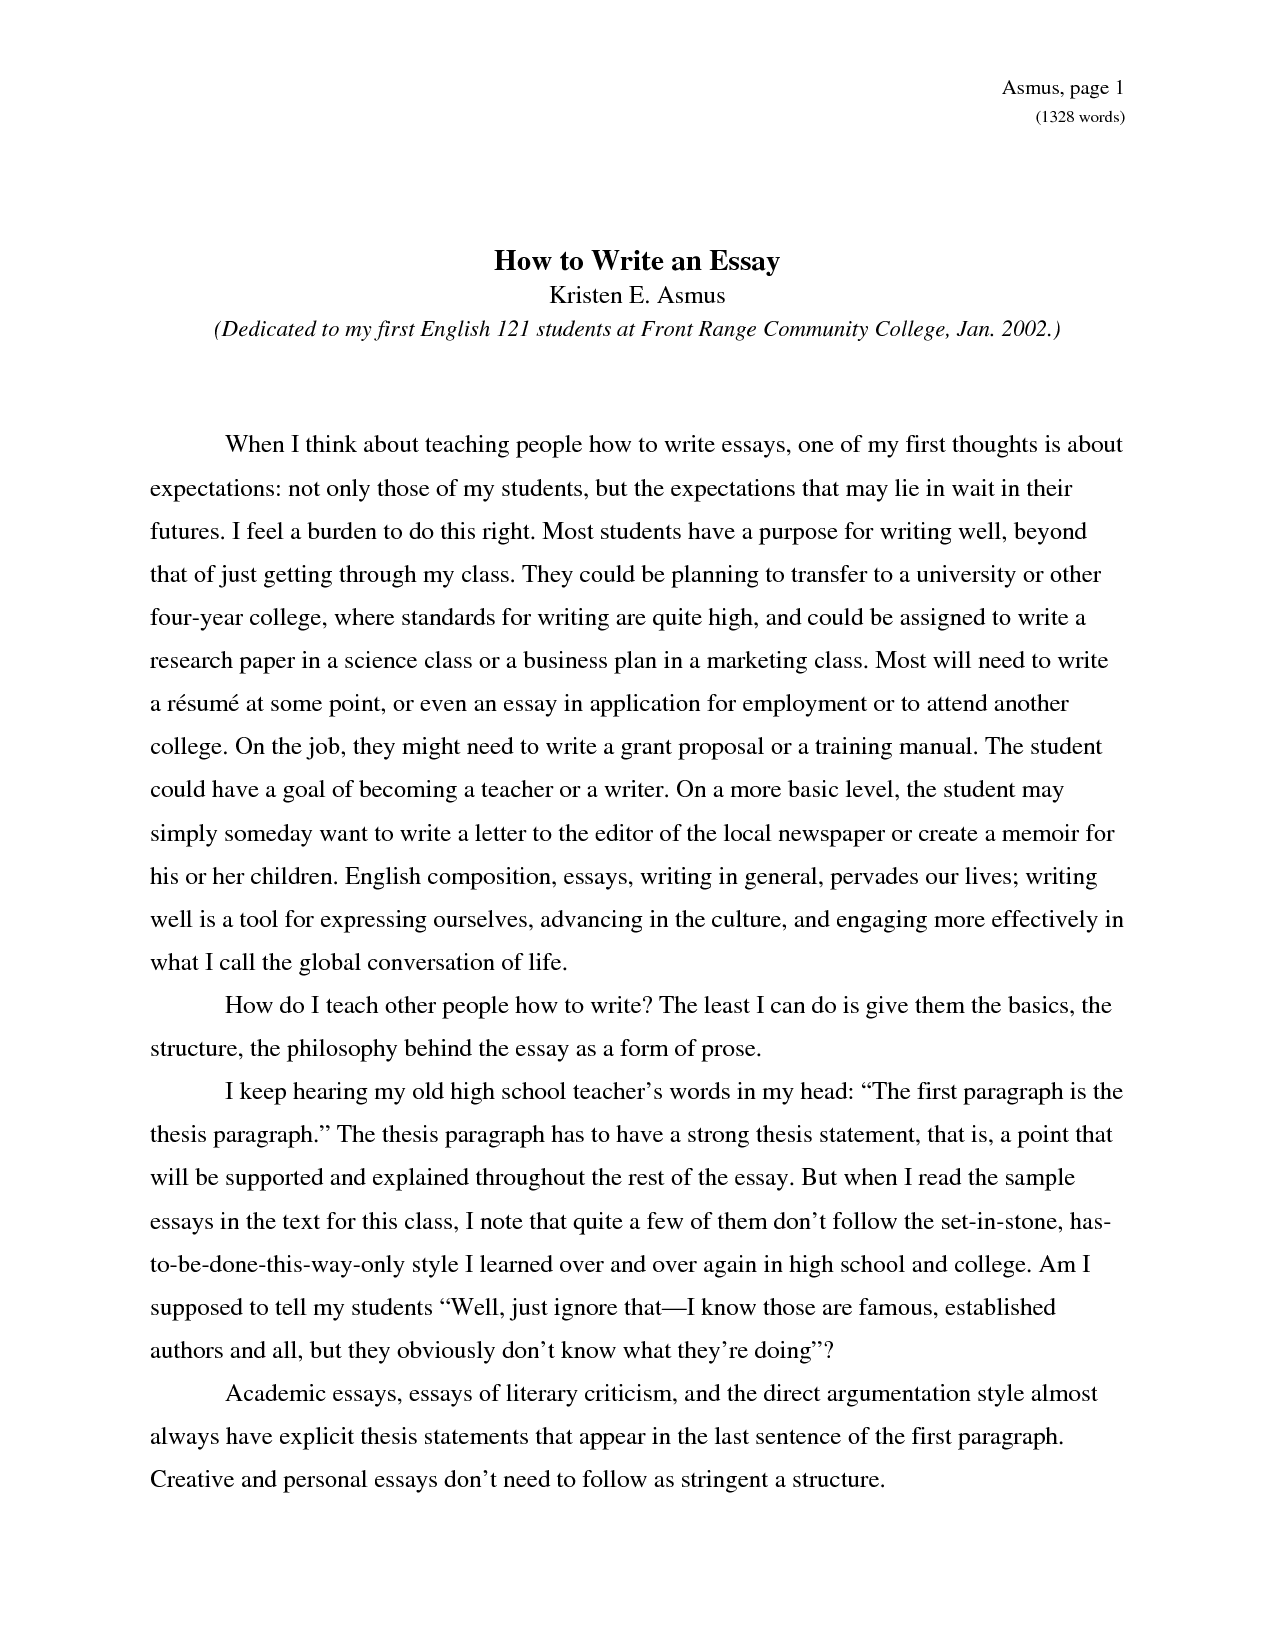 How To Write A Strong Biographical Research Paper Thesis Statement